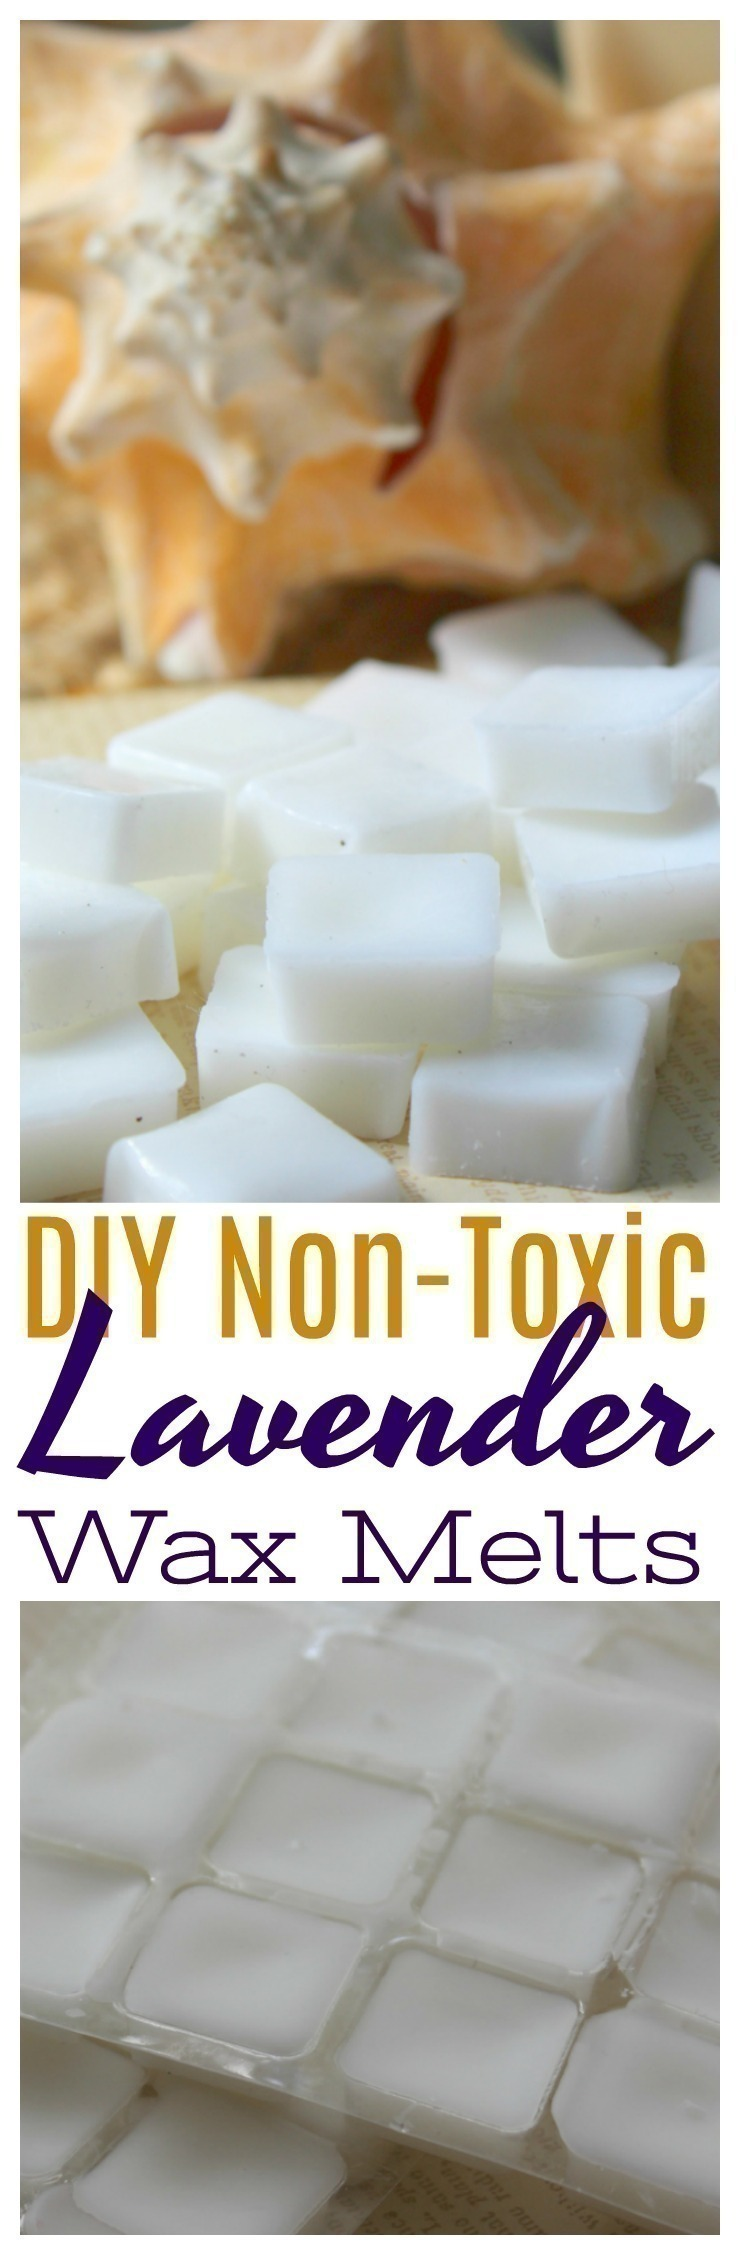 These Non-Toxic Lavender Wax Melts are easy to DIY at home, and are wonderful to give as gifts for family and friends!